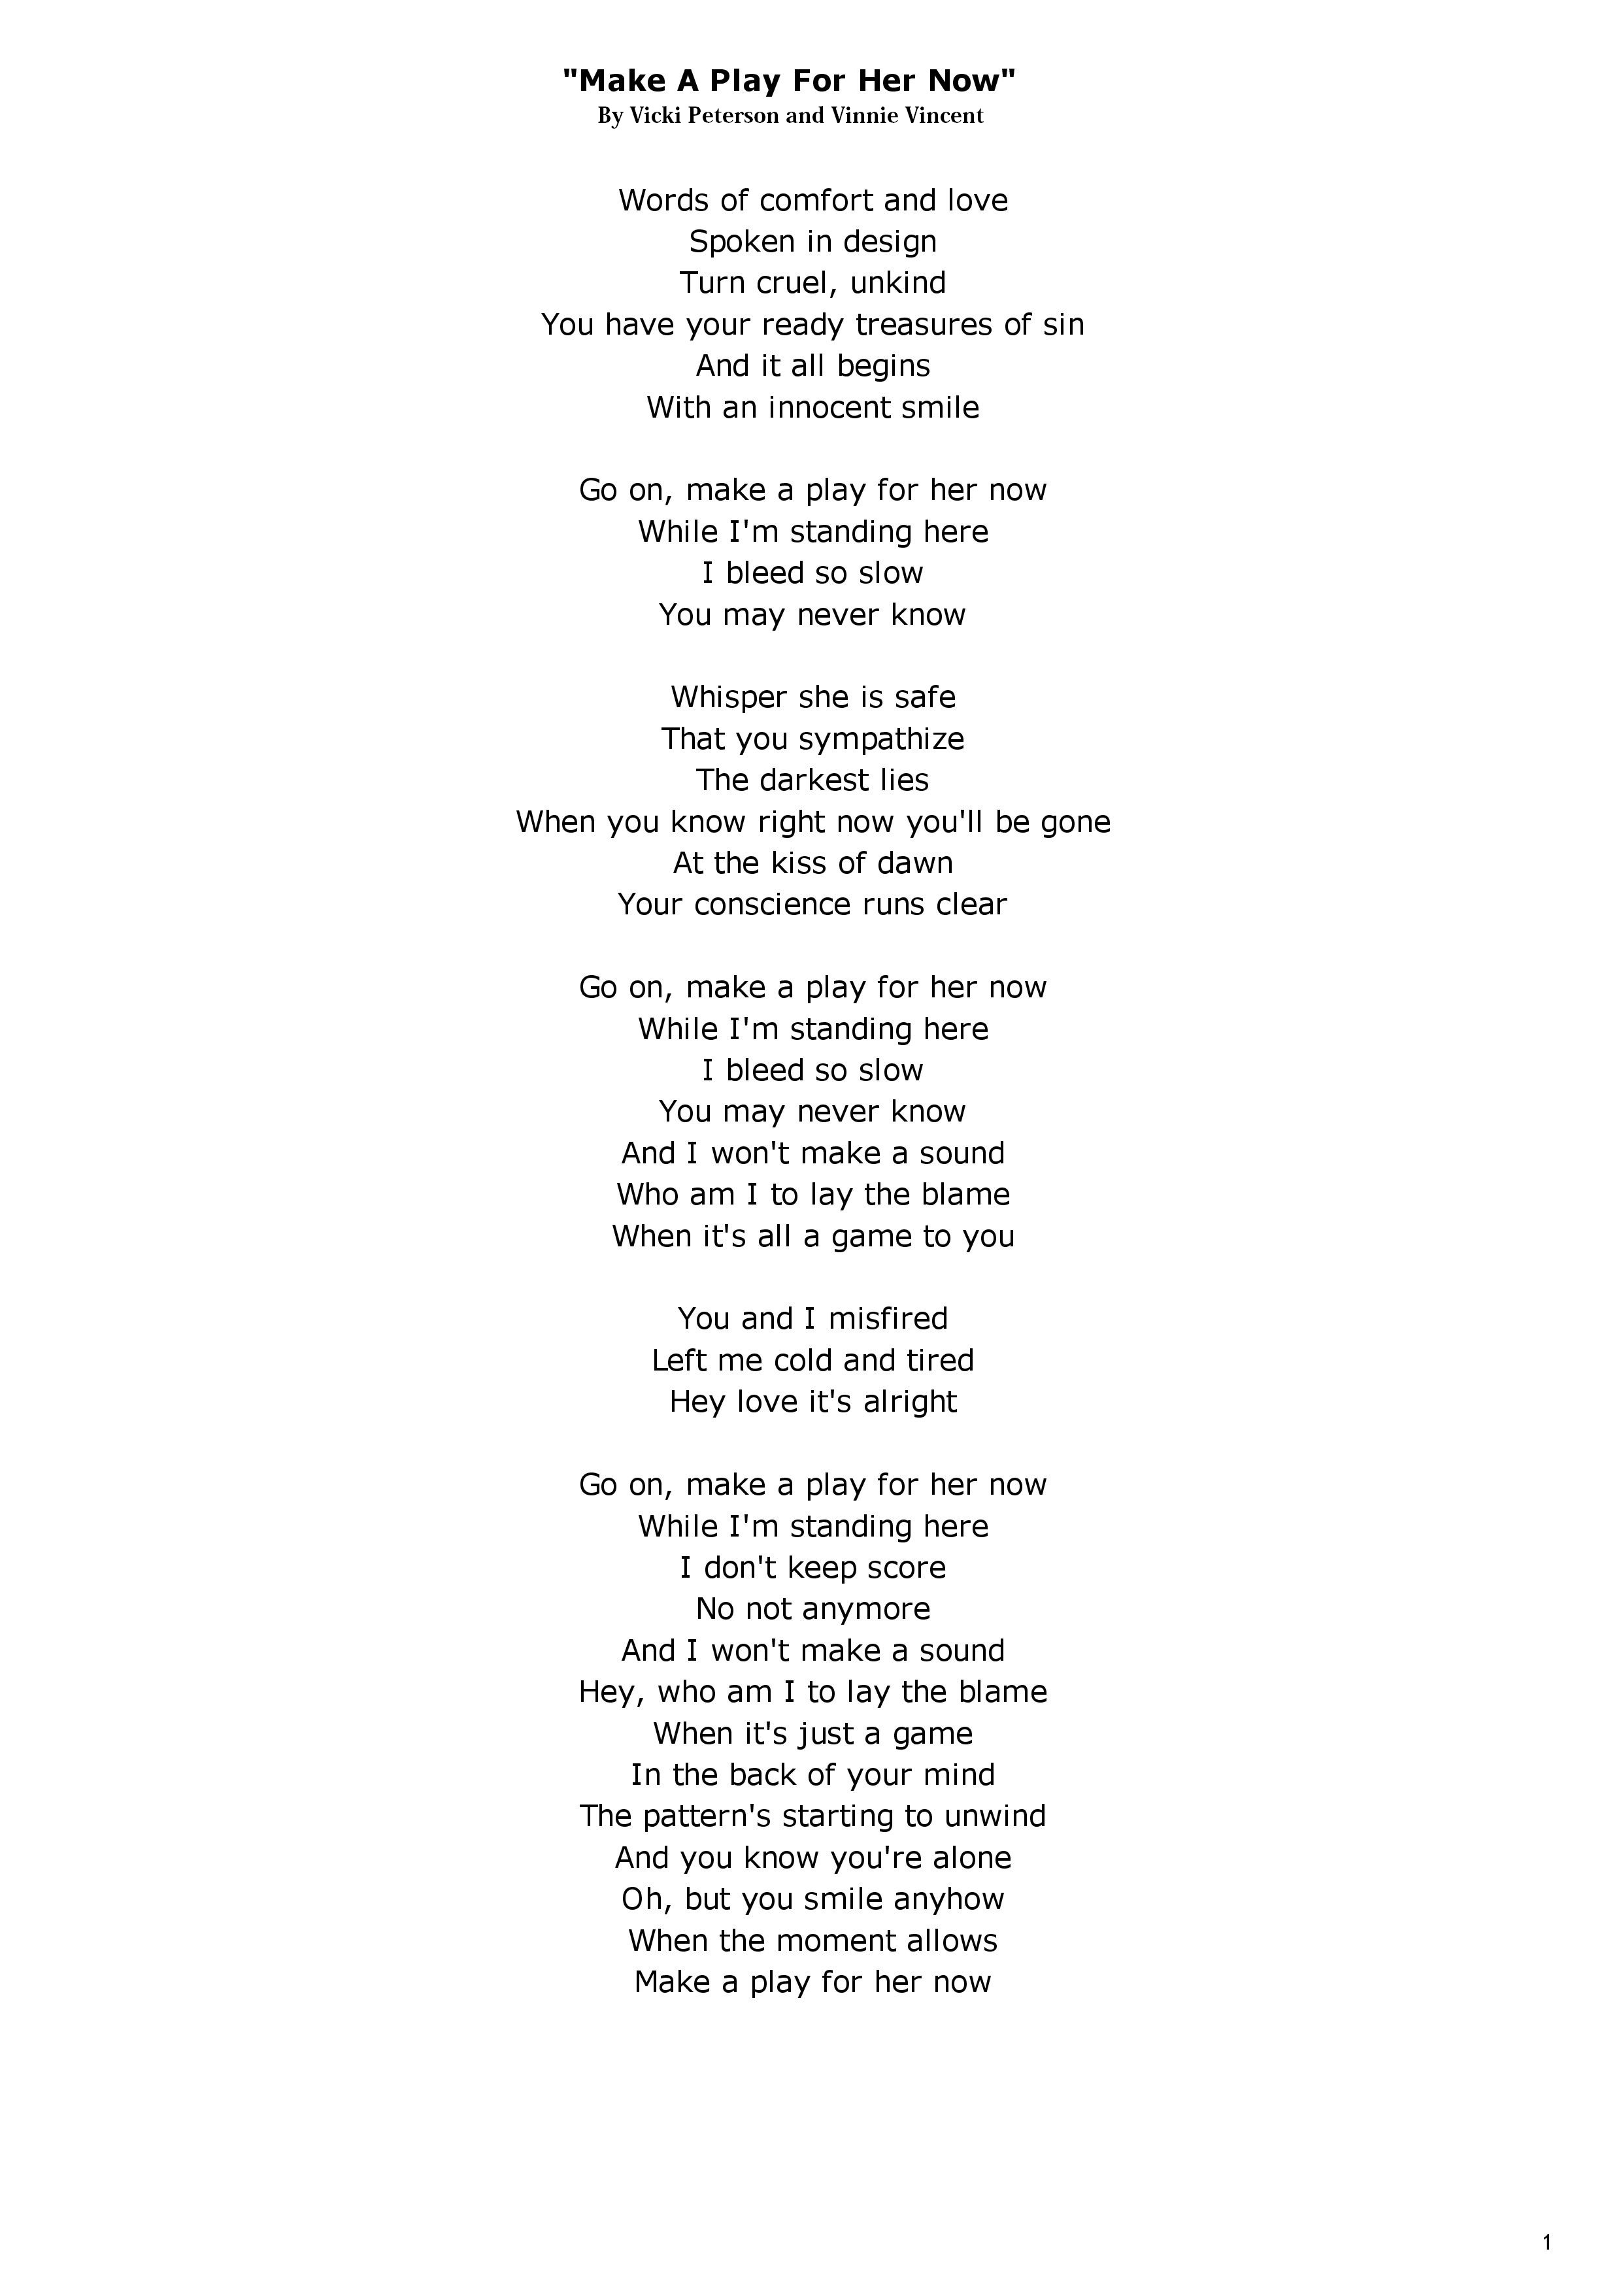 THE BANGLES LYRICS - Make A Play For Her Now.jpg